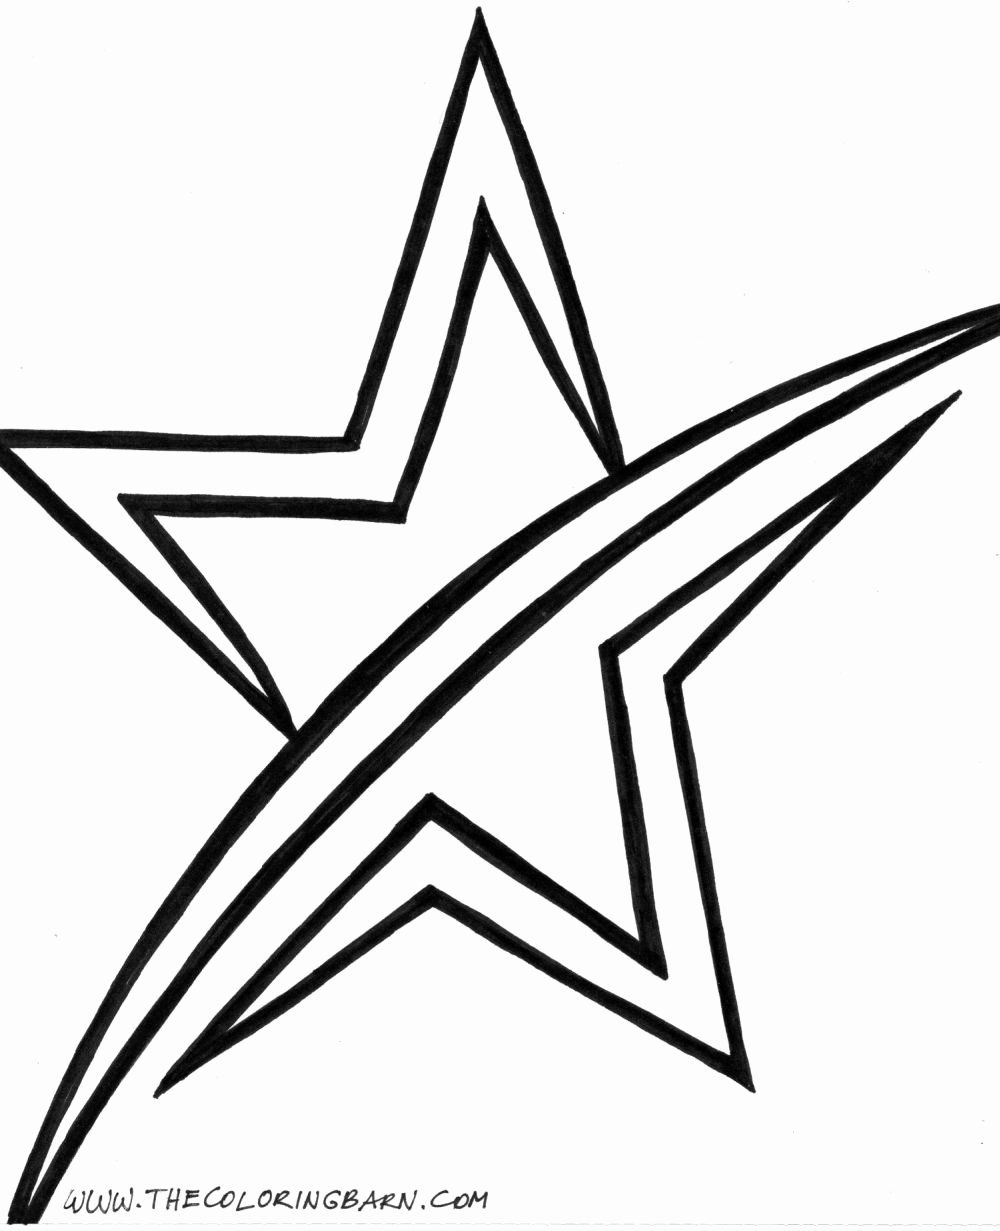 Shooting Star Coloring Page New Free Shooting Star Coloring Pages Download Free Clip Art Free C Star Coloring Pages Coloring Pages Coloring Pages Inspirational